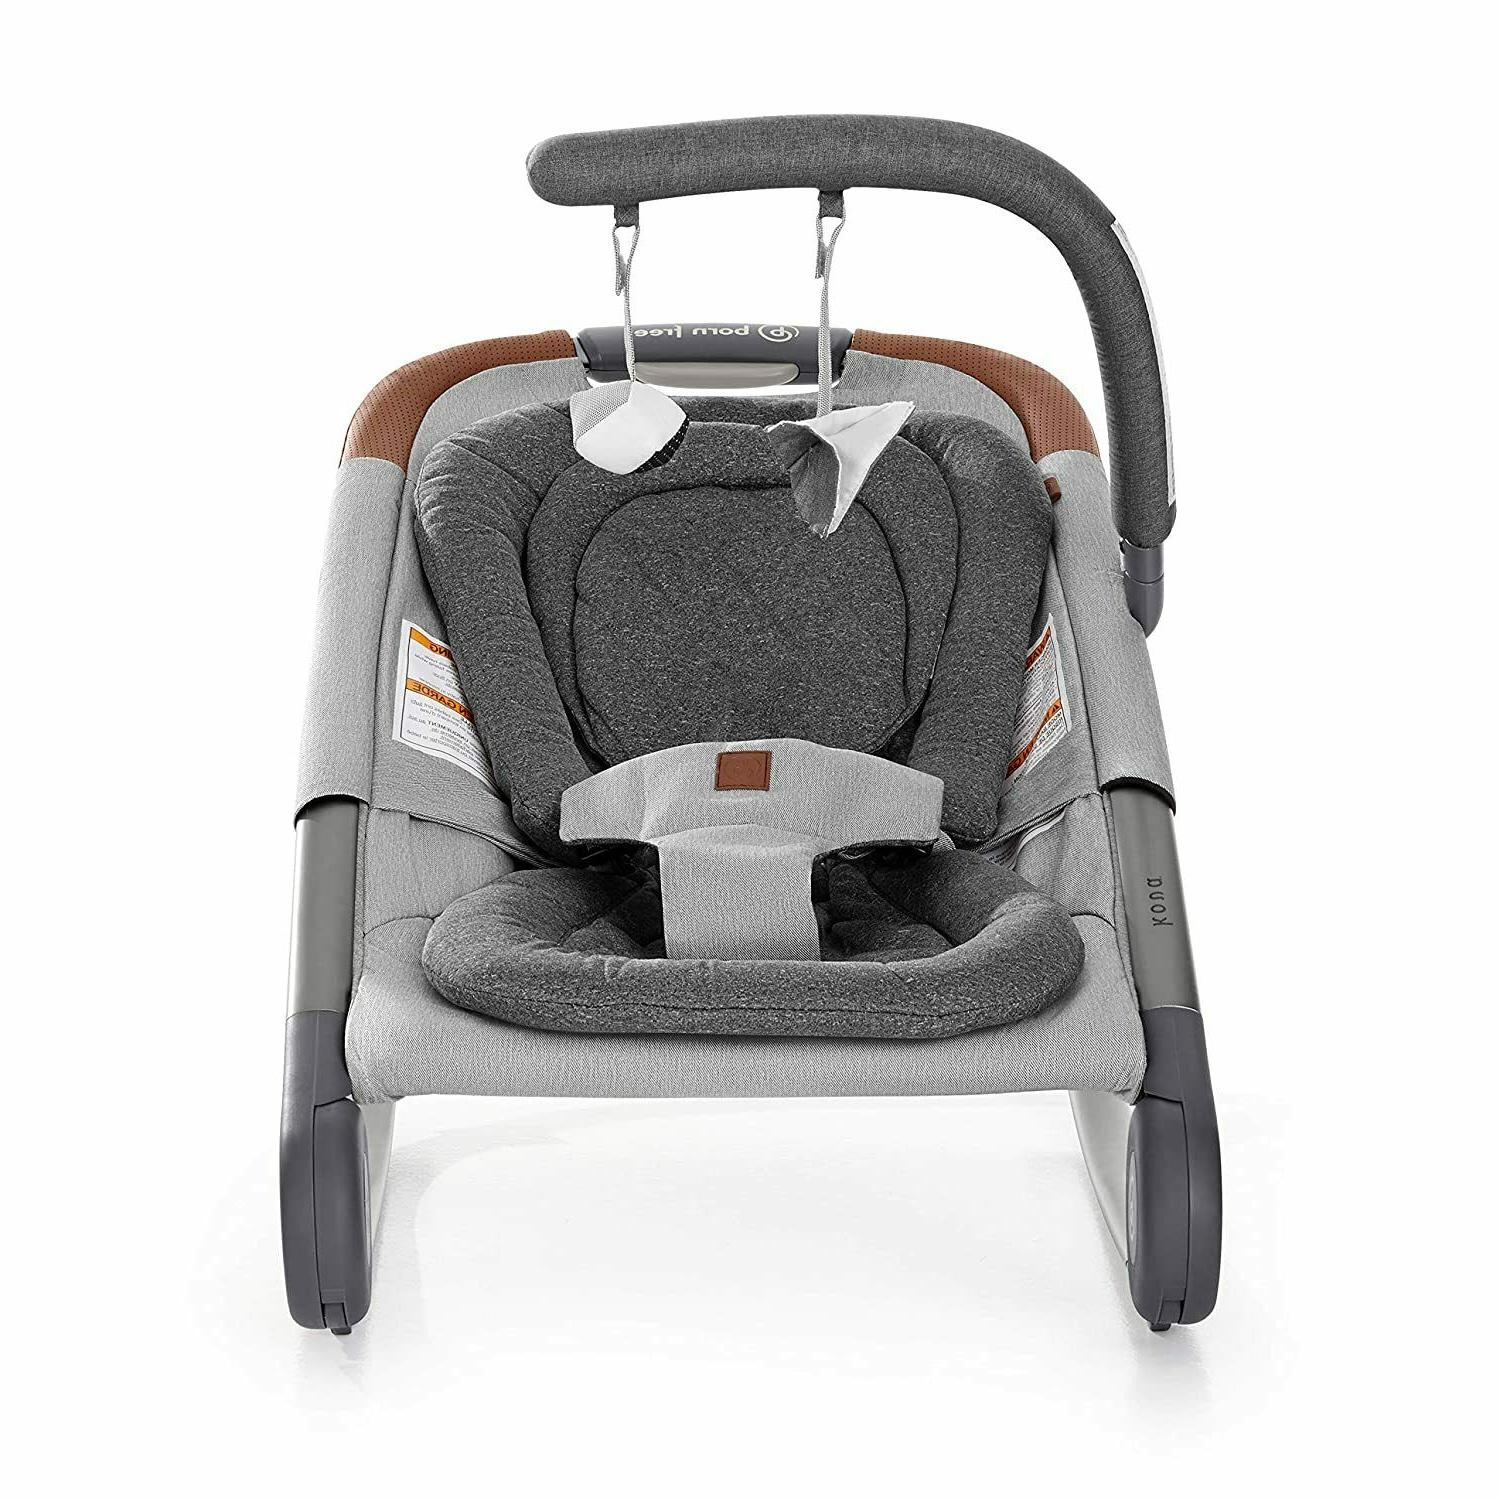 born Bouncer Baby Rocker Modes Fold